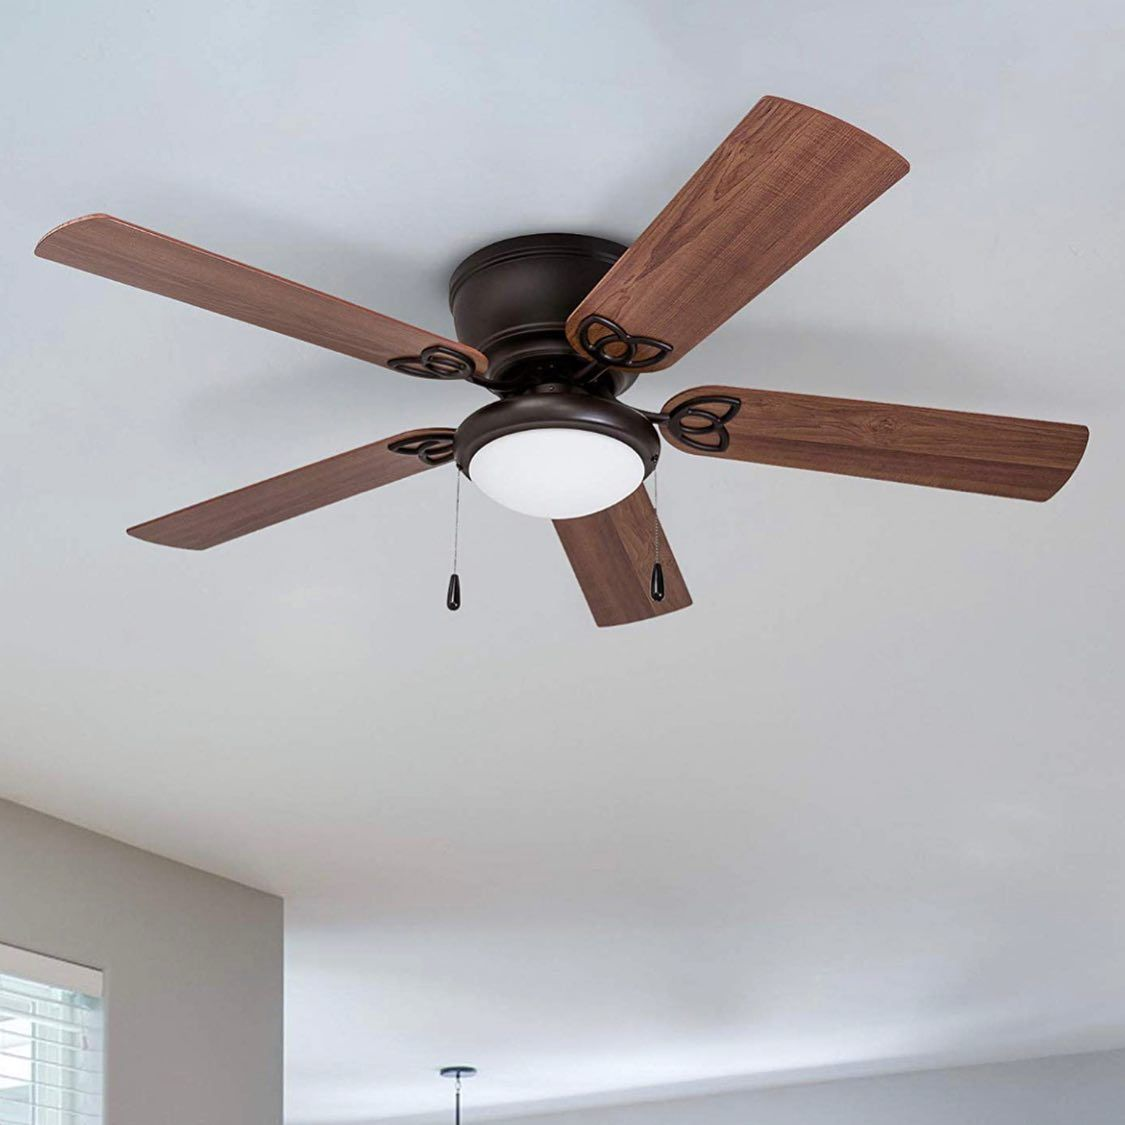 Low Ceilings No Problem Check Out The Low Profile Design Of The Prominence Home Benton Ceilingfans Lowp Led Ceiling Fan Ceiling Fan Hugger Ceiling Fan Best ceiling fans for low ceilings